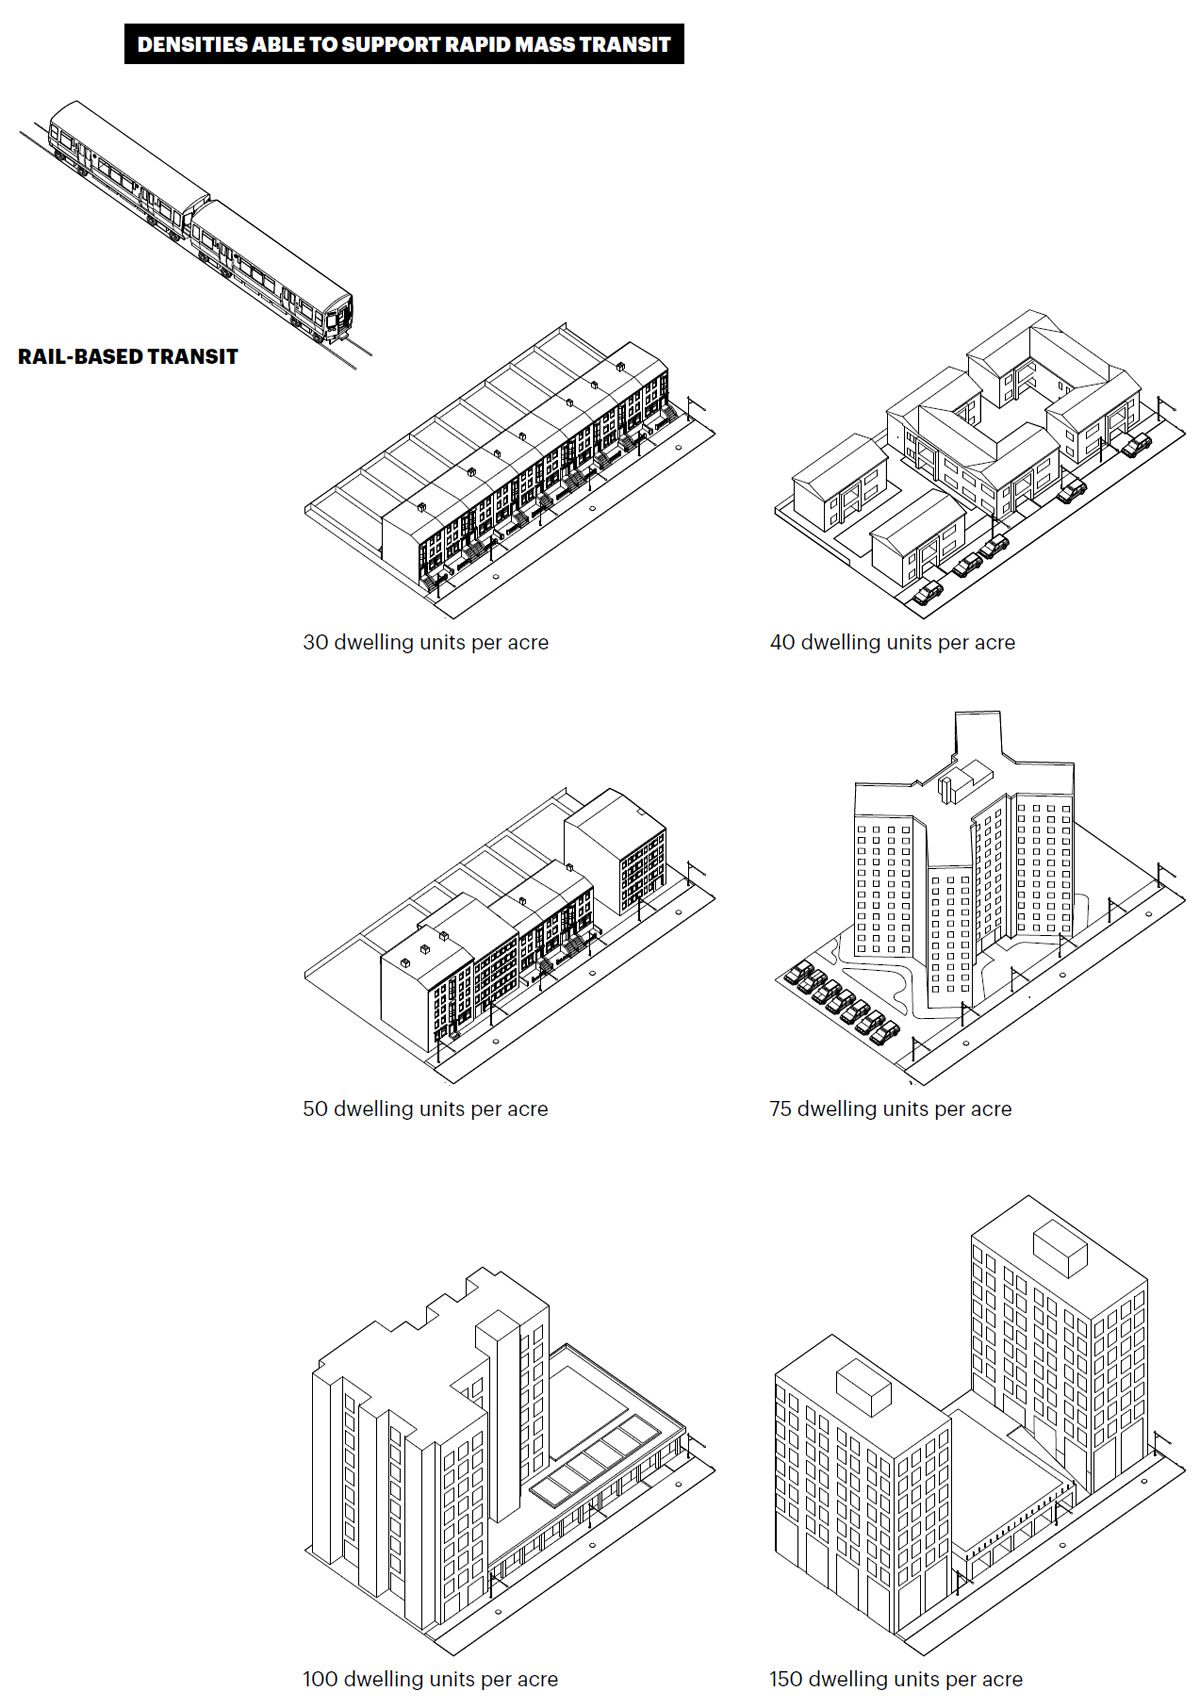 Building Hyperdensity And Civic Delight